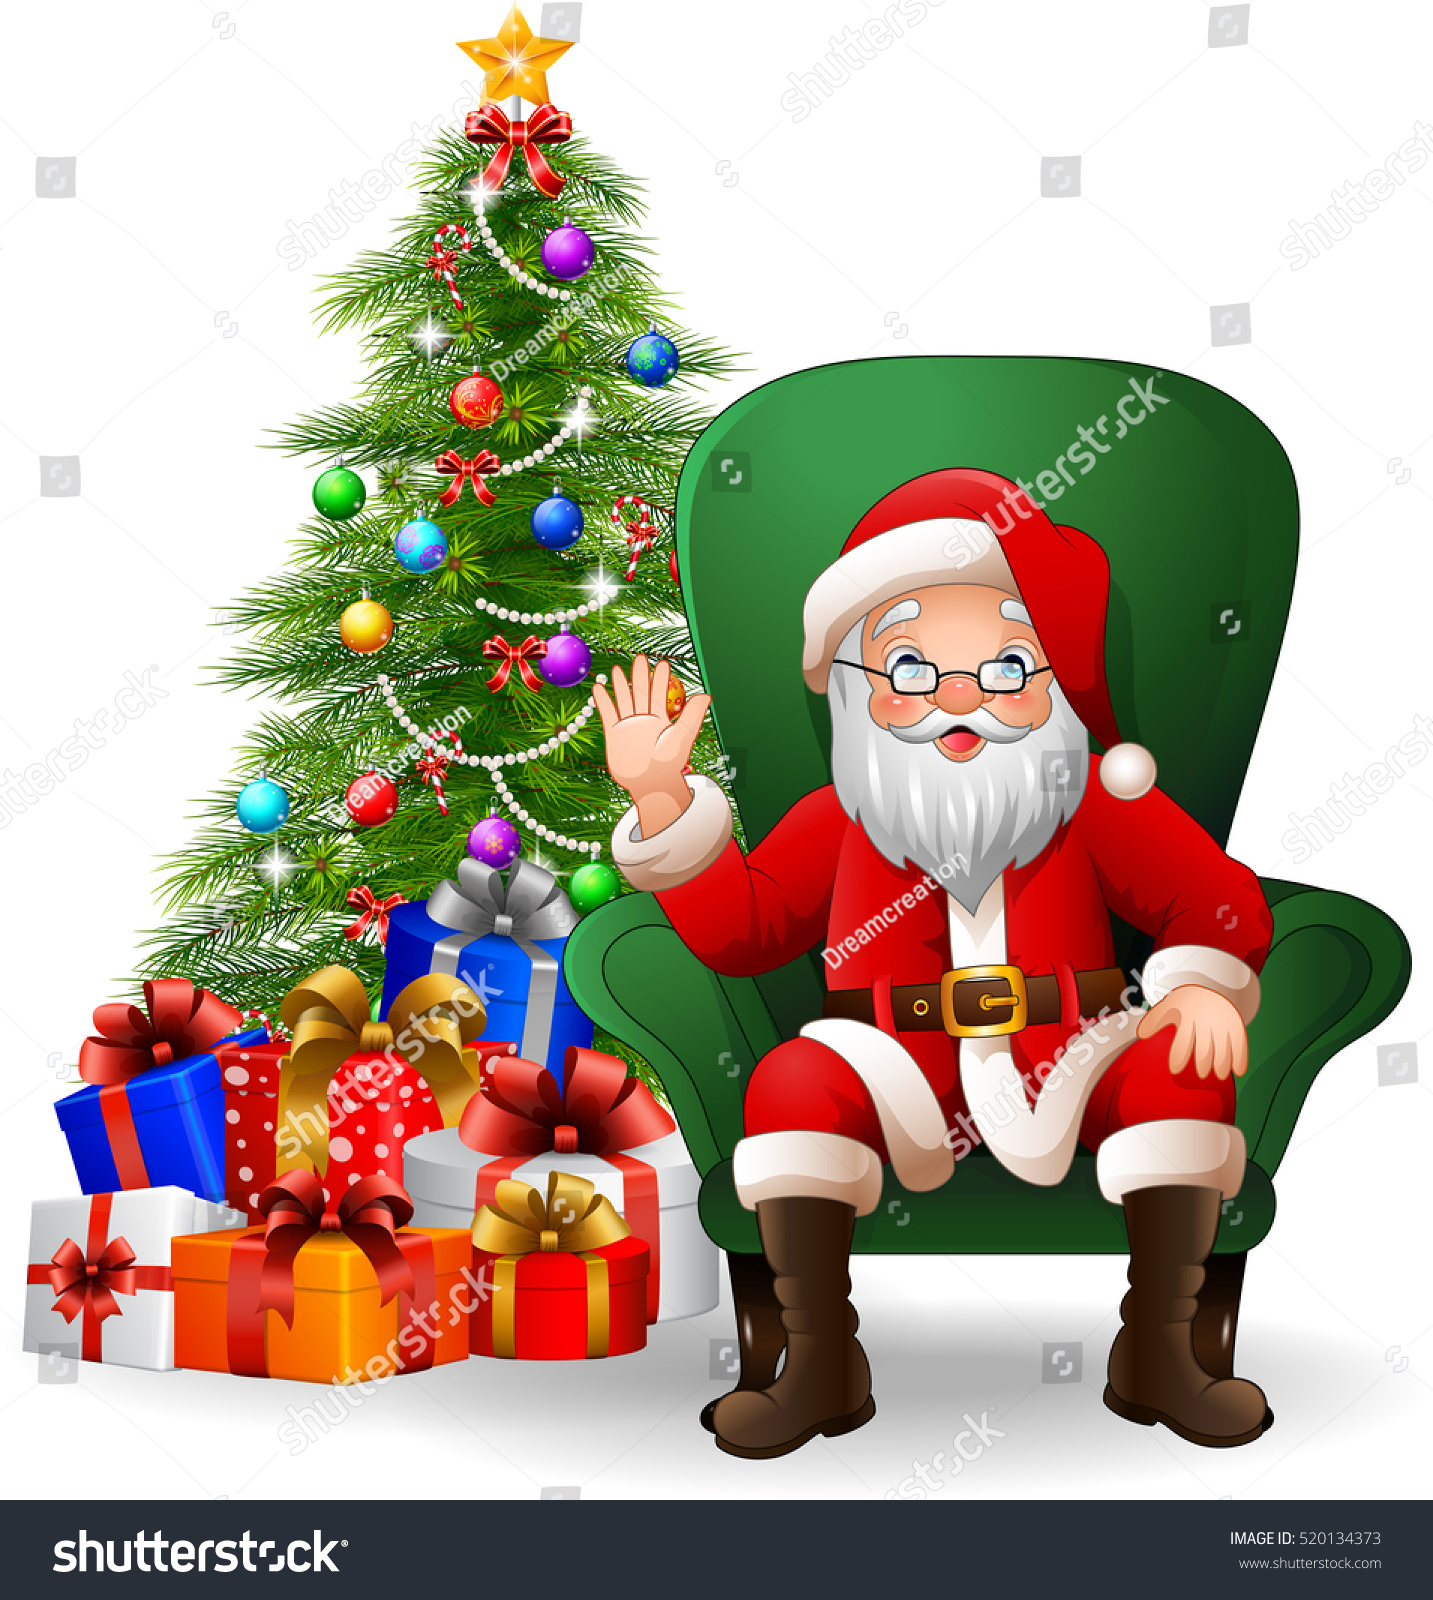 Cartoon santa claus sitting on green stock vector Photoshop santa in your living room free